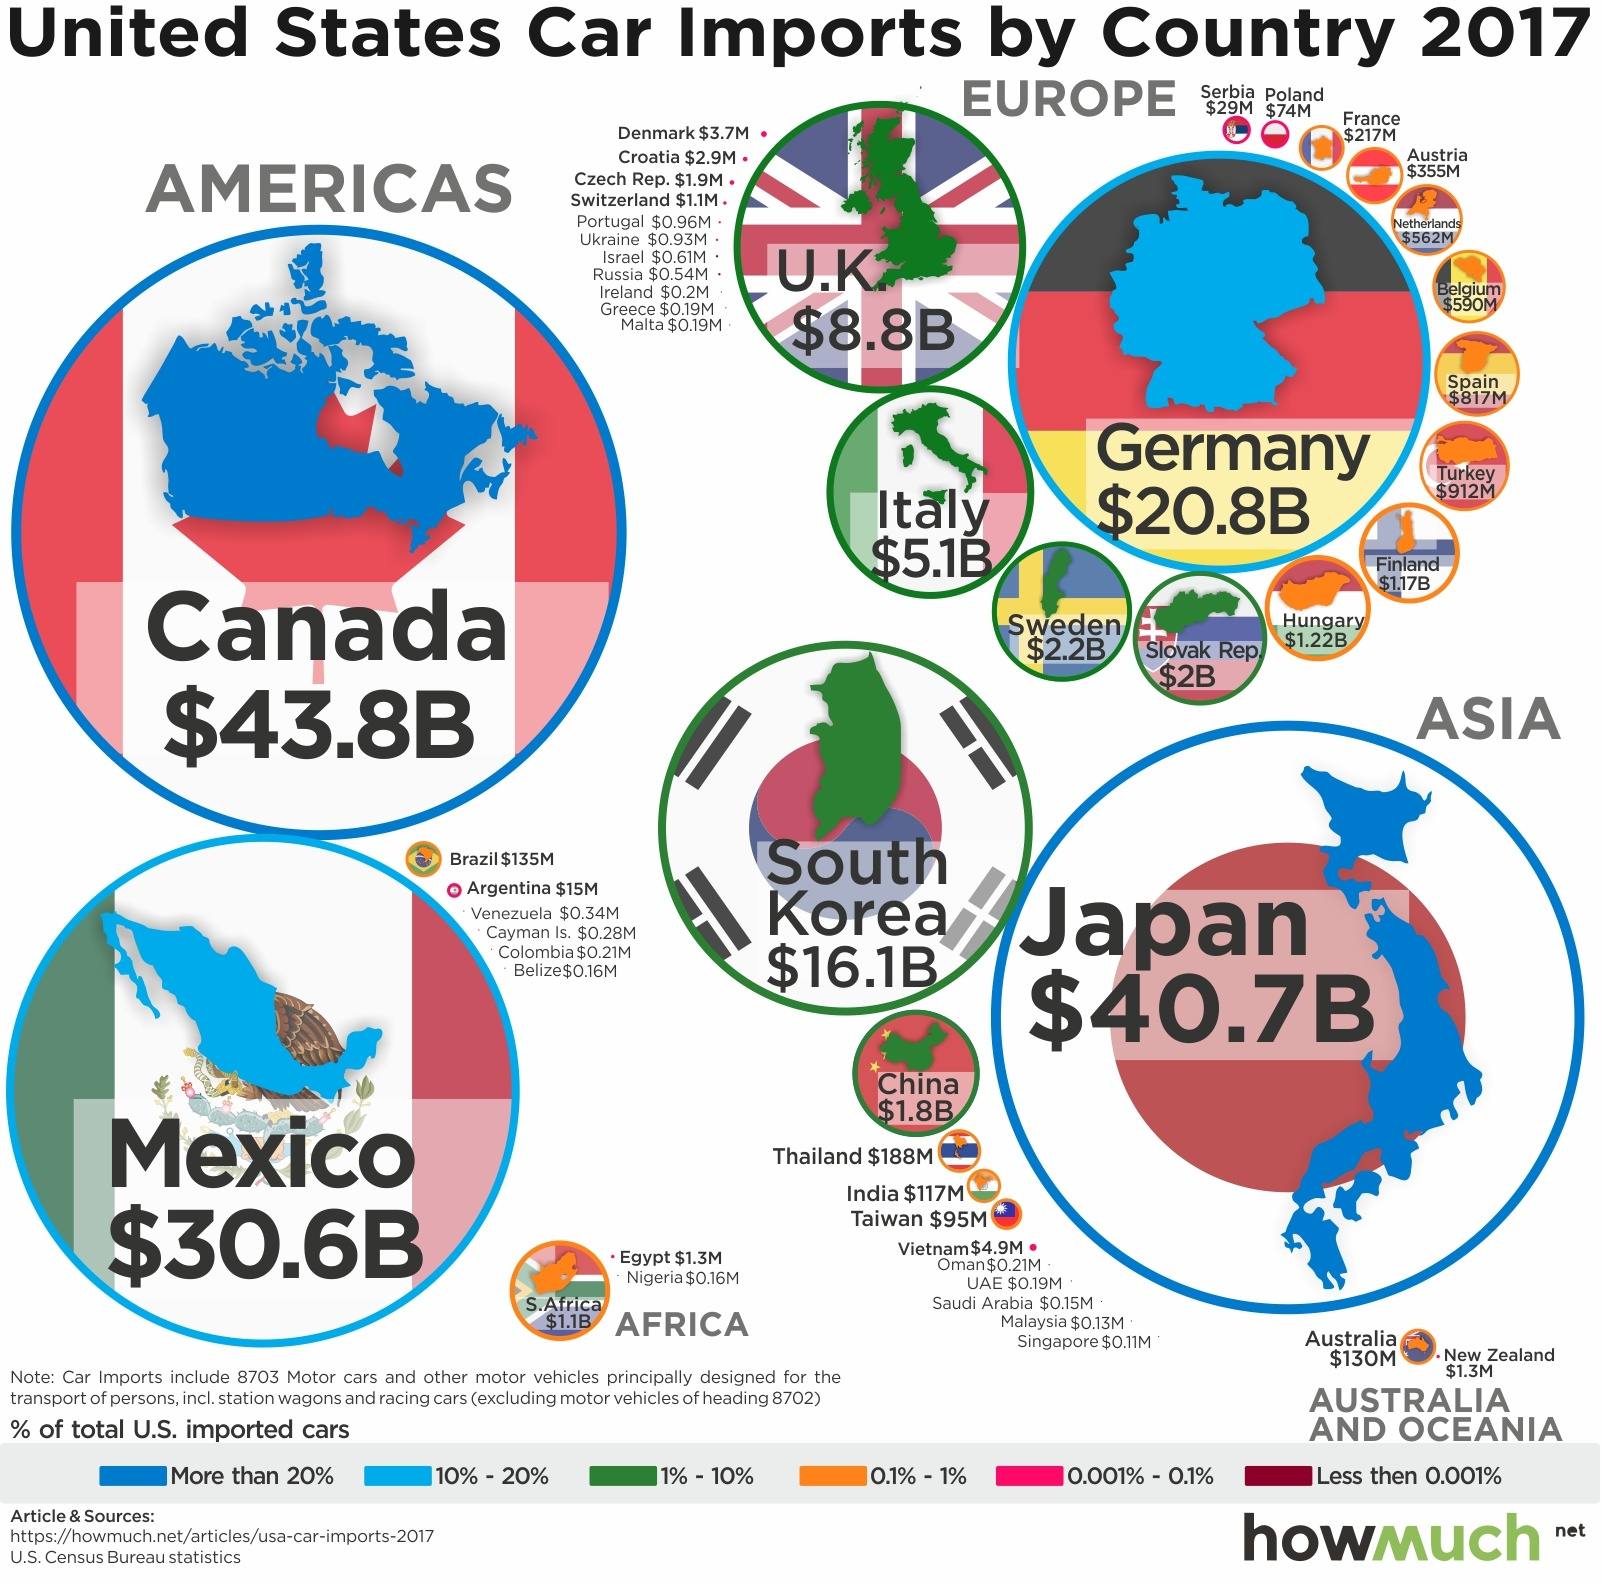 In One Map: Car Imports into the United States